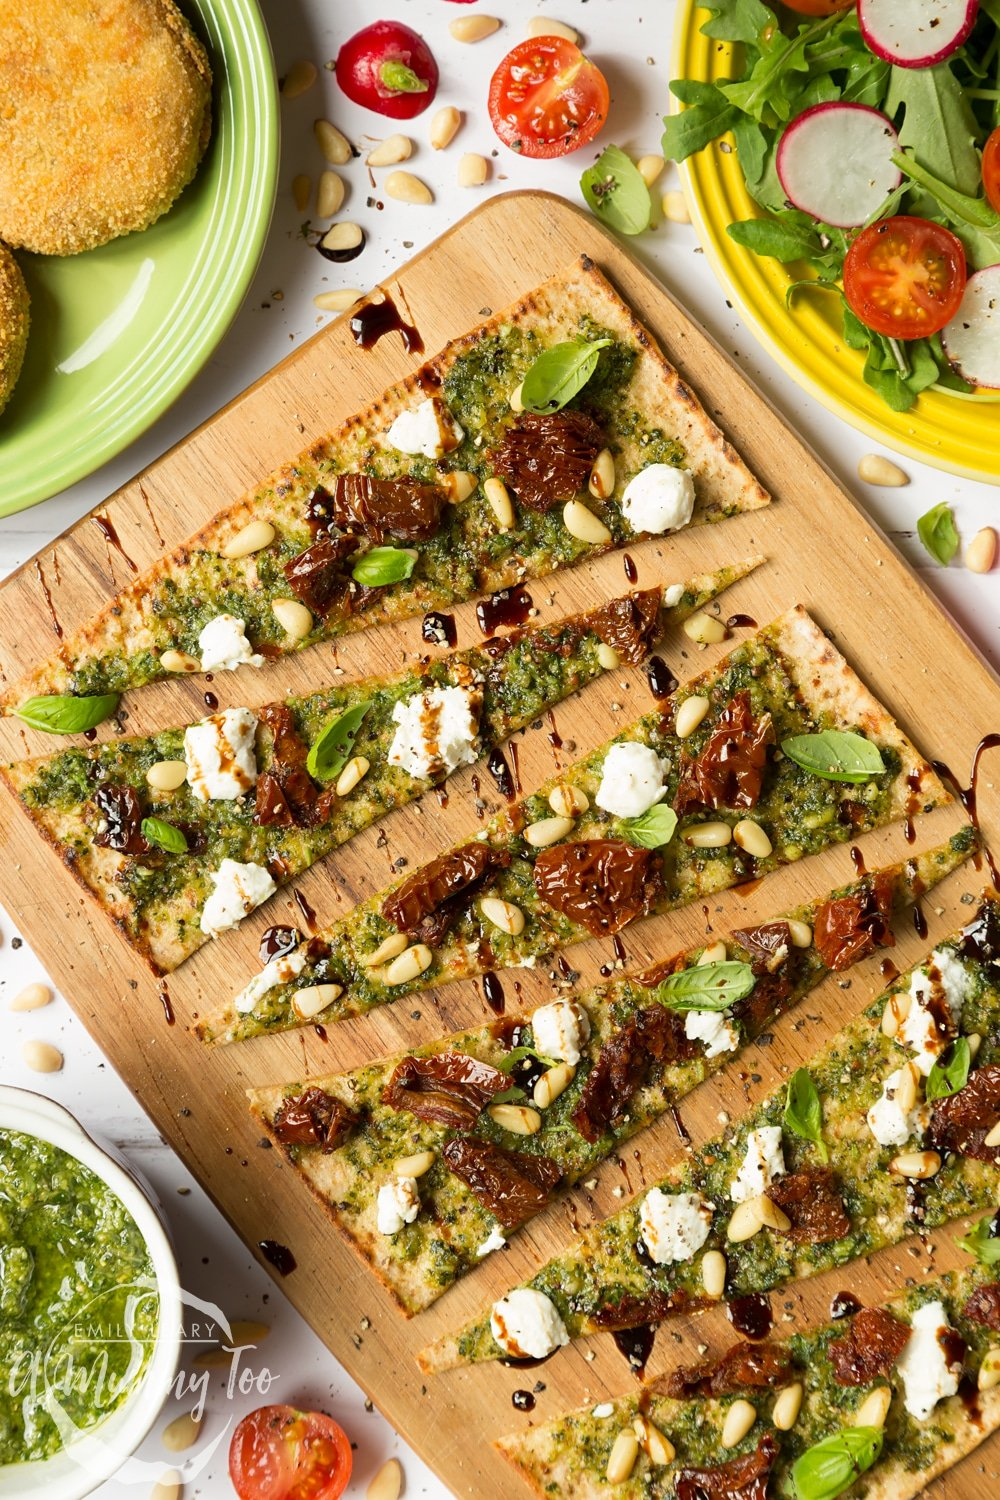 Pesto flatbread pizza topped with goat's cheese, pine nuts and sundried tomatoes